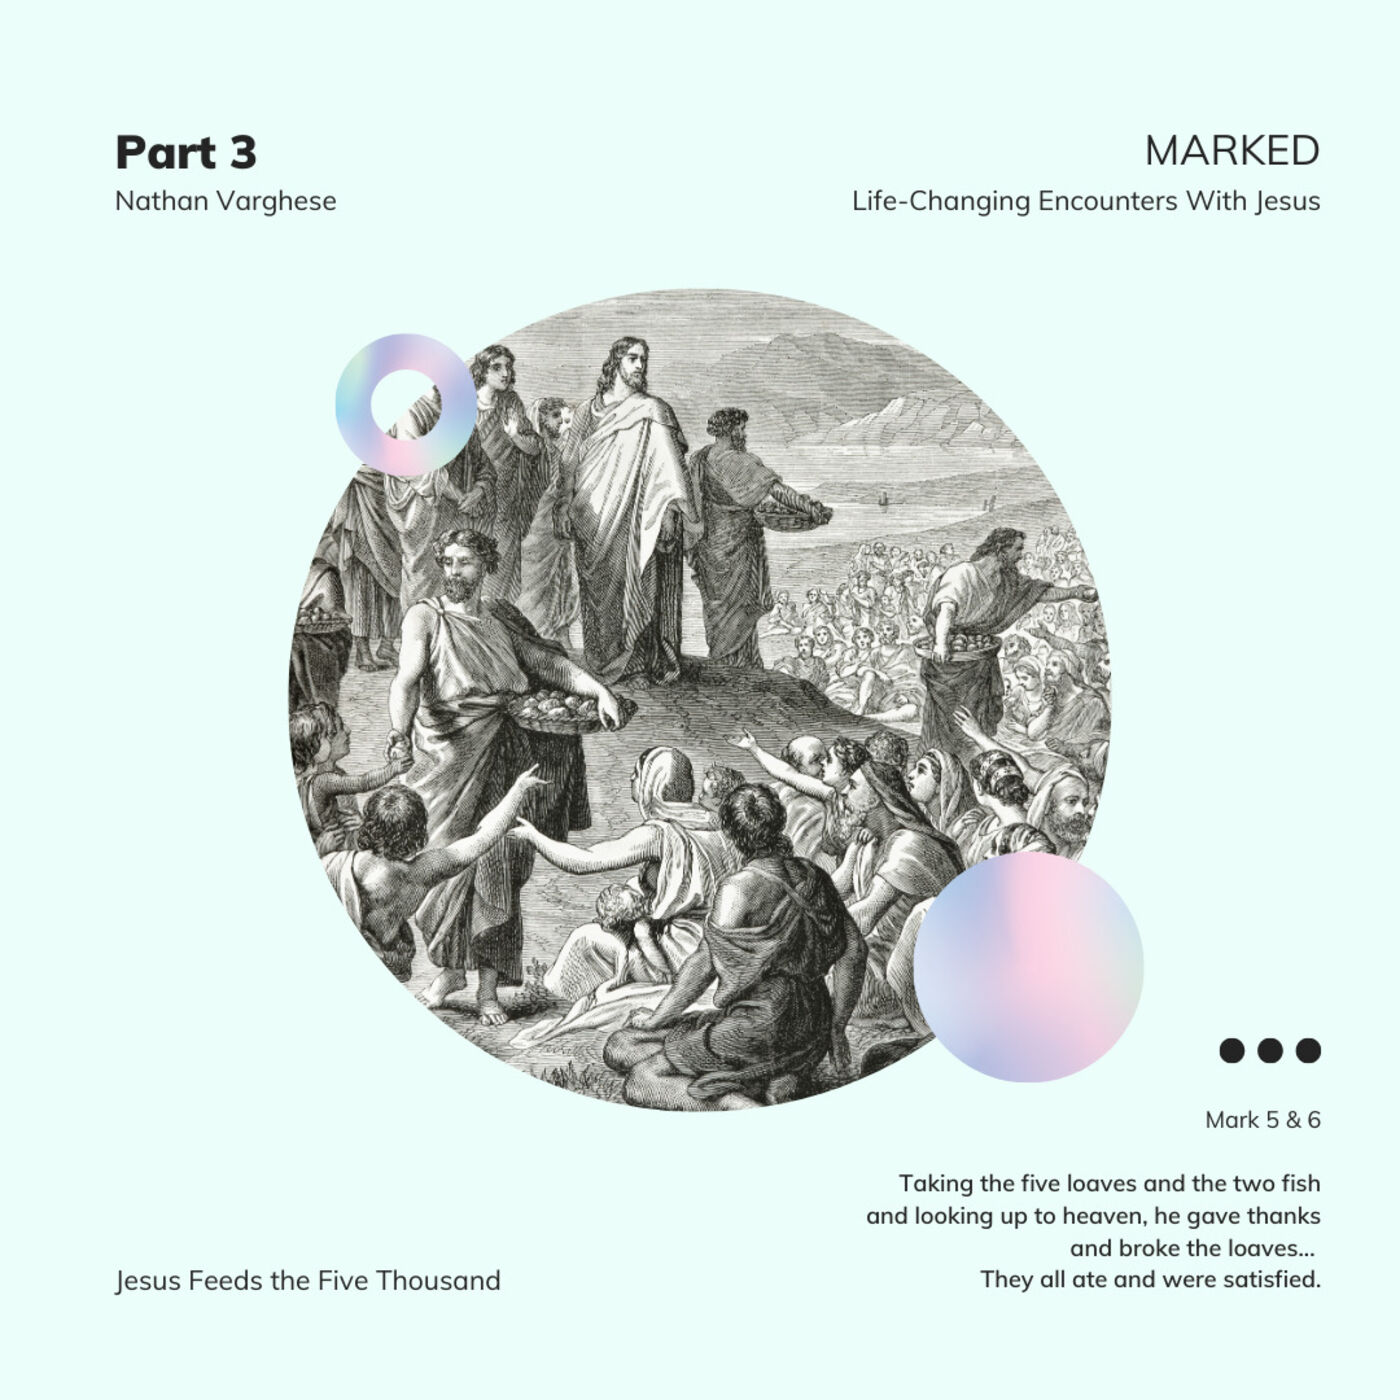 MARKED. Life-Changing Encounters With Jesus - Mark 6:30-44 - Nathan Varghese